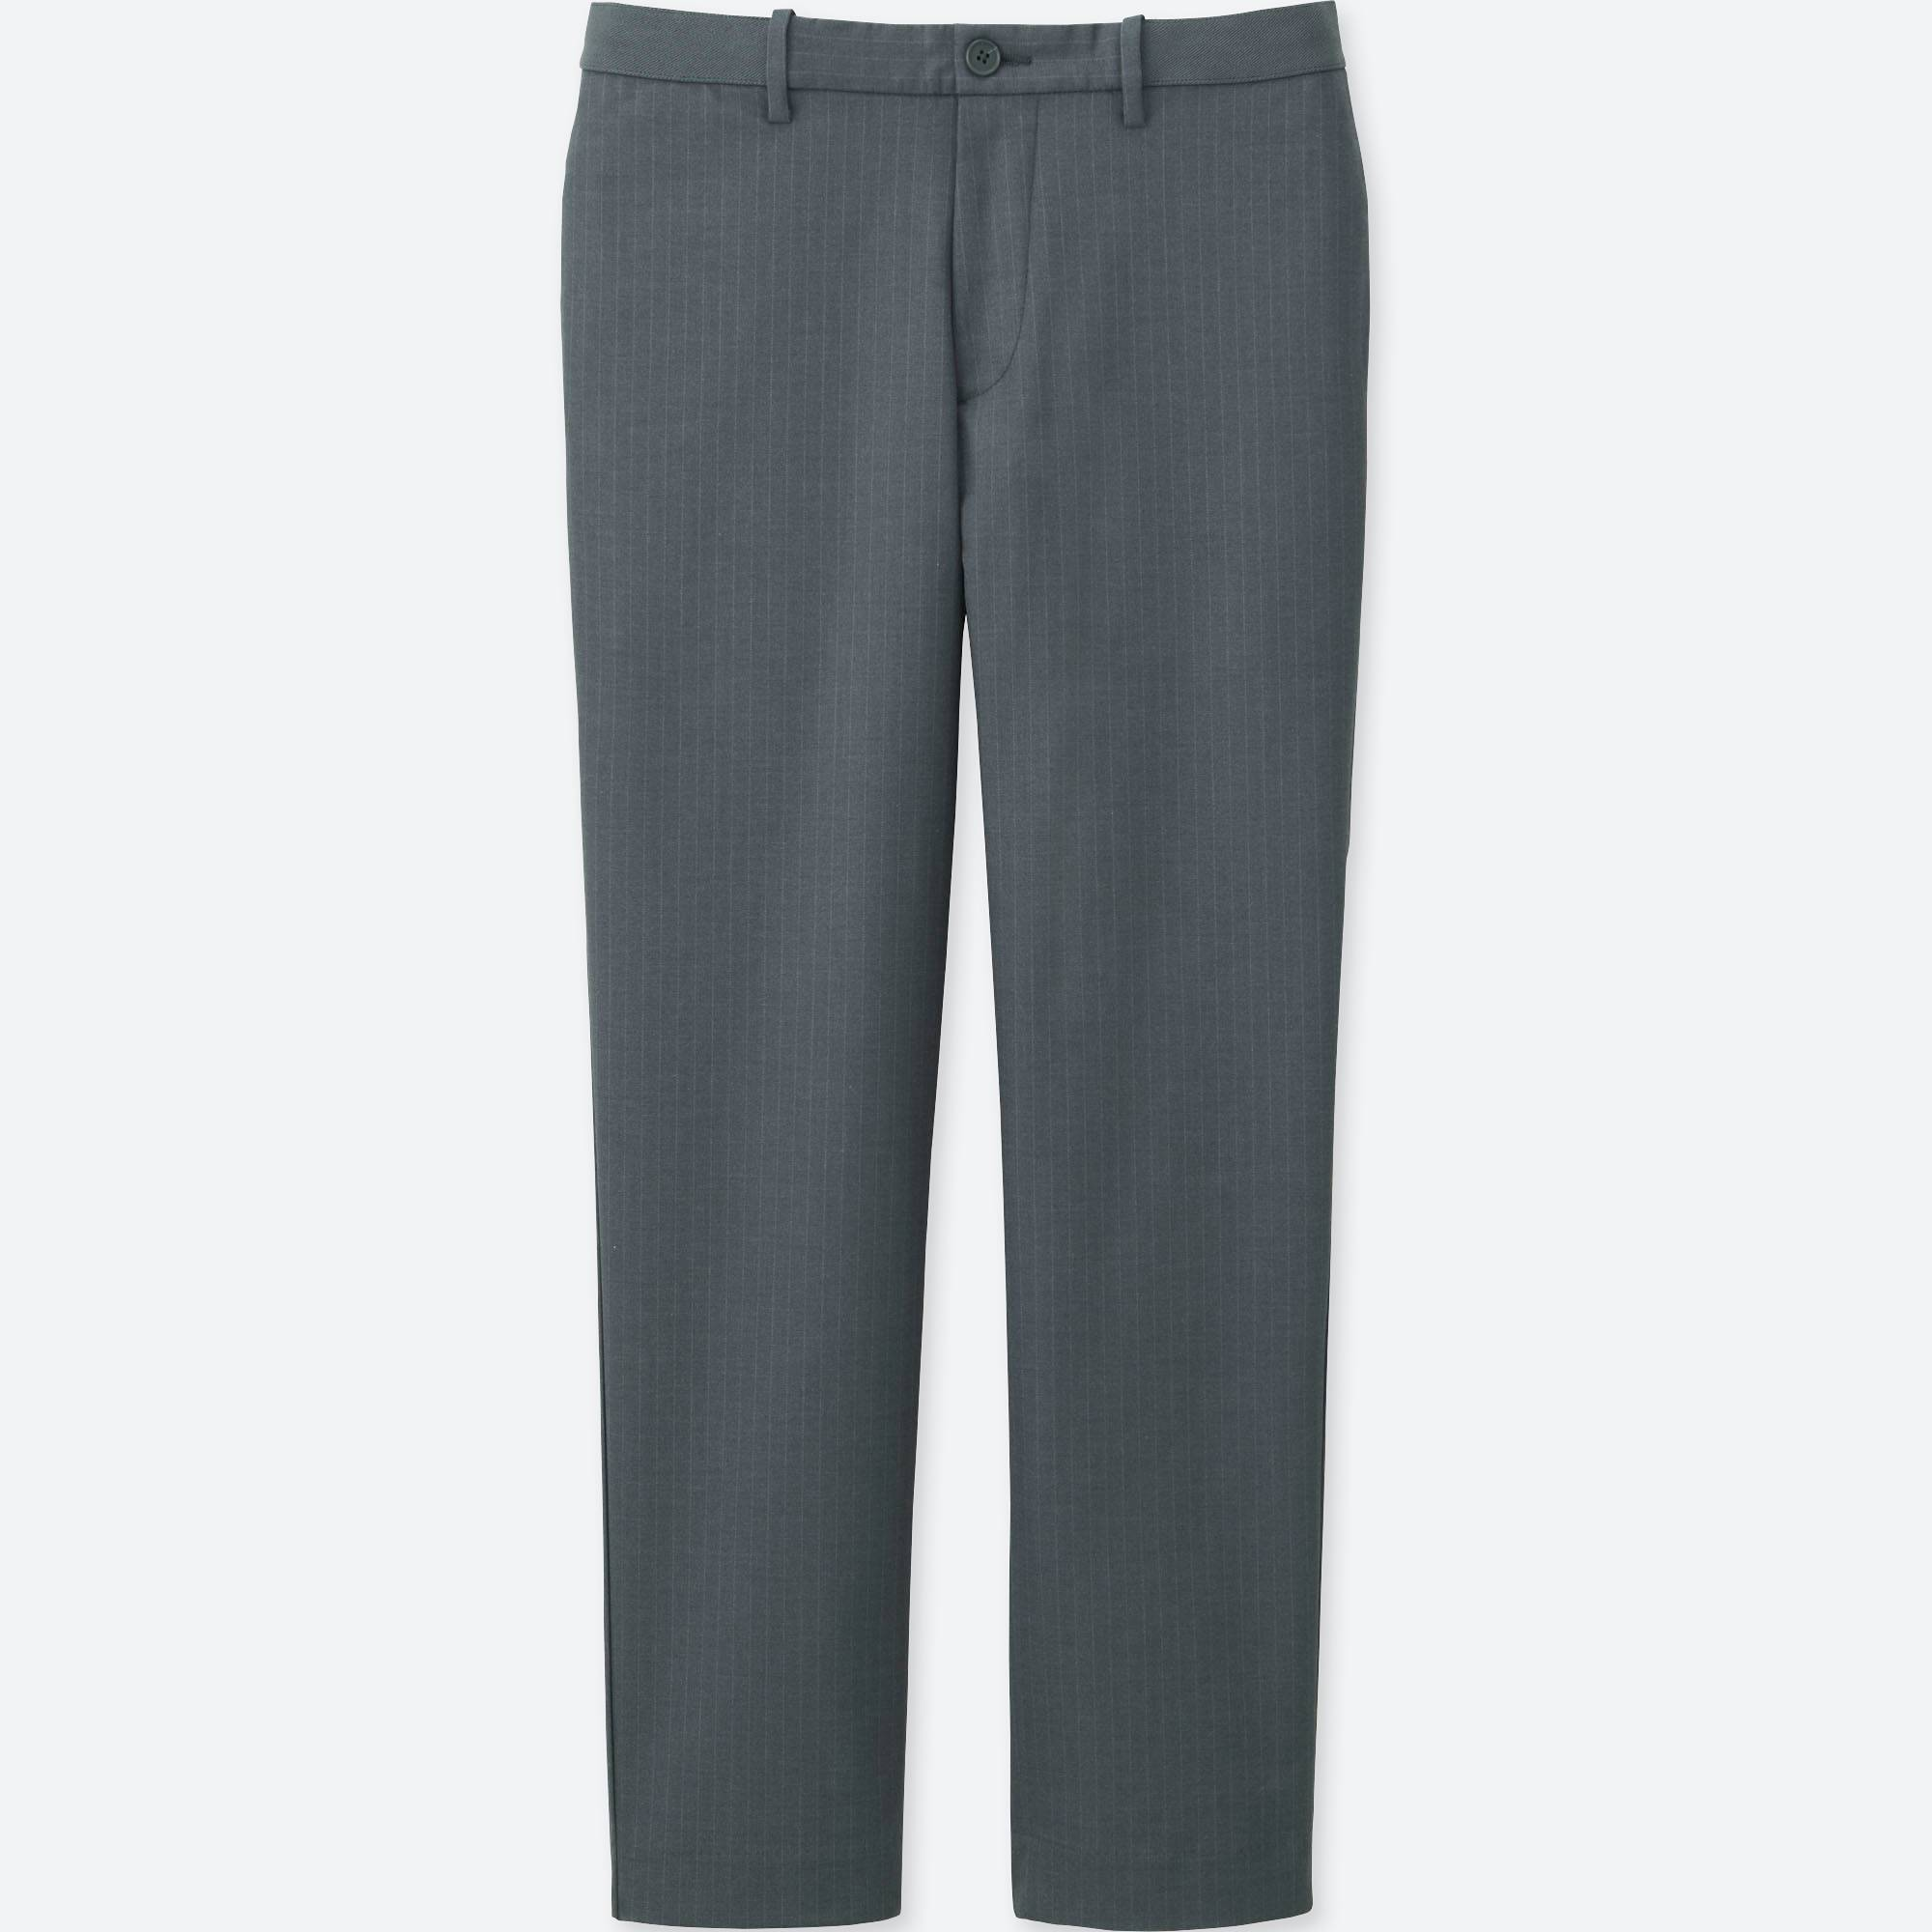 Men's Pants and Chinos | UNIQLO US